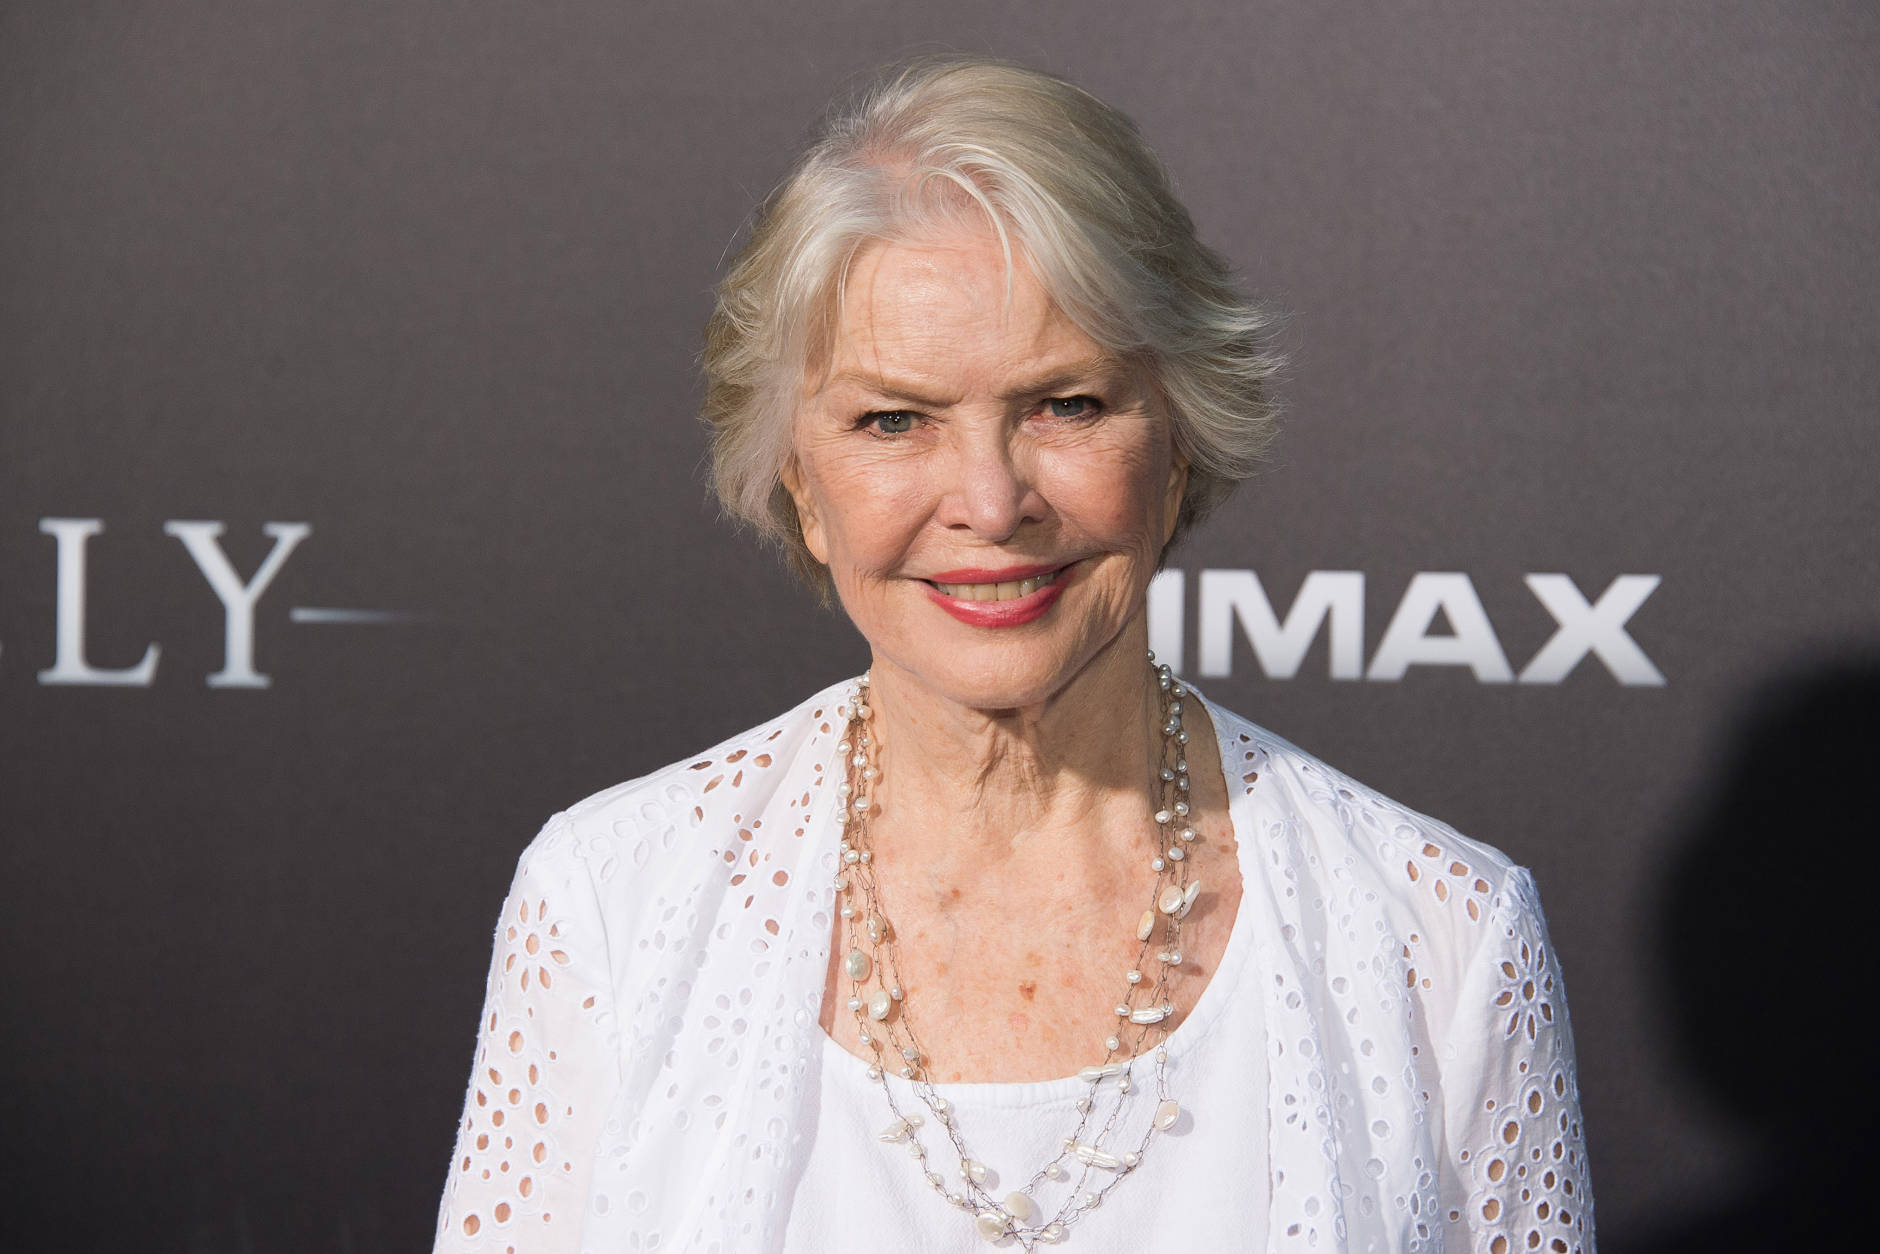 """Ellen Burstyn attends the premiere of """"Sully"""" at Alice Tully Hall on Tuesday, Sept. 6, 2016, in New York. (Photo by Charles Sykes/Invision/AP)"""